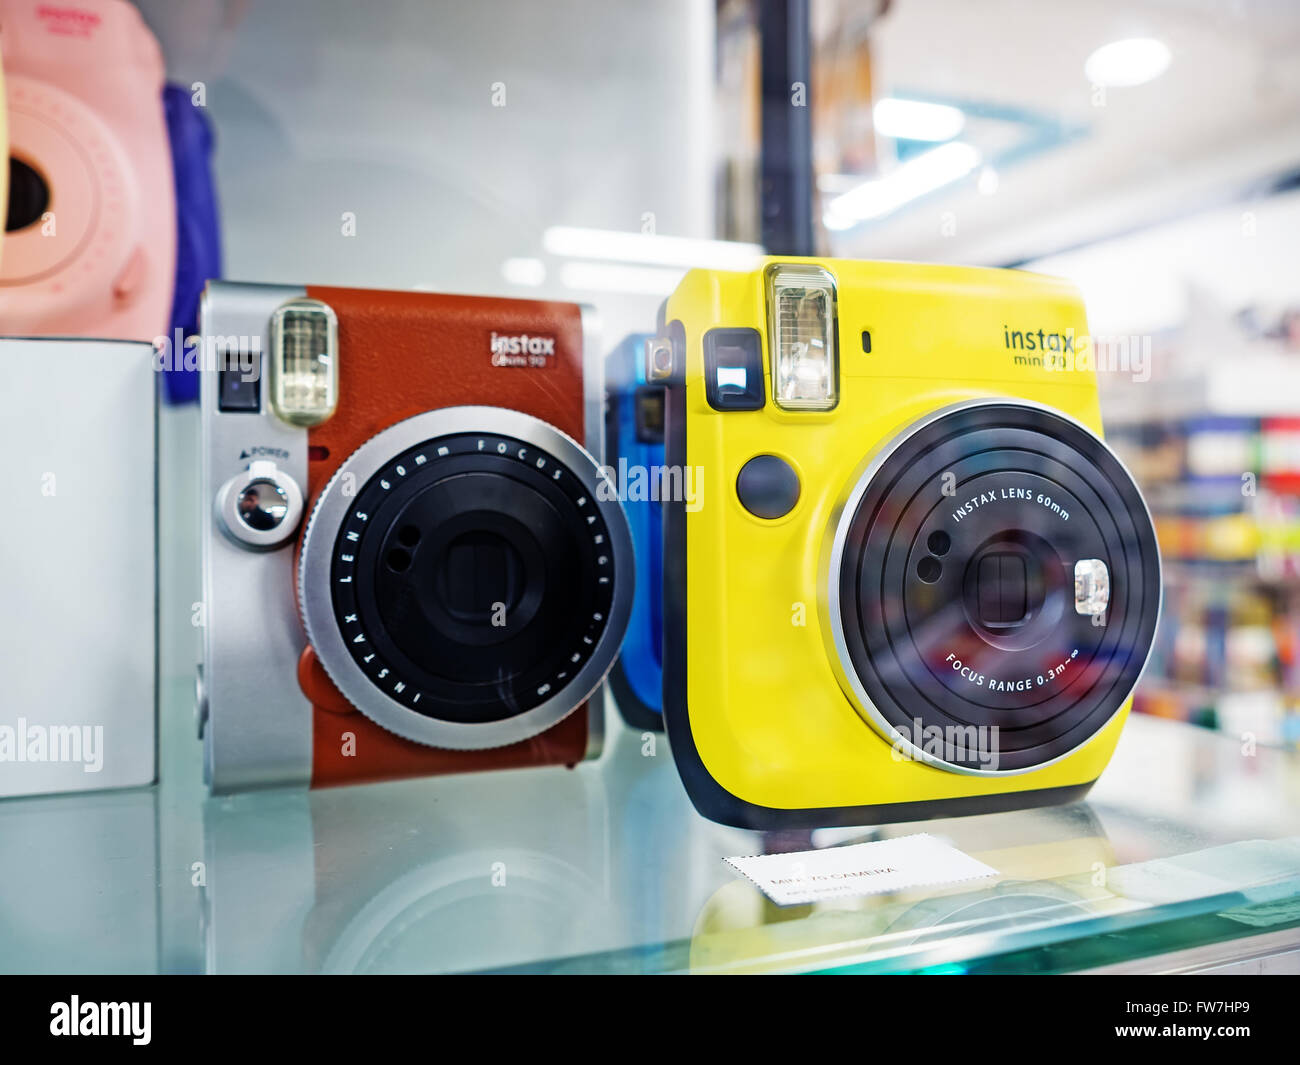 GUM Shop, Moscow, Russia - February 21, 2016: Showcase with Instax Fujifilm cameras - Stock Image